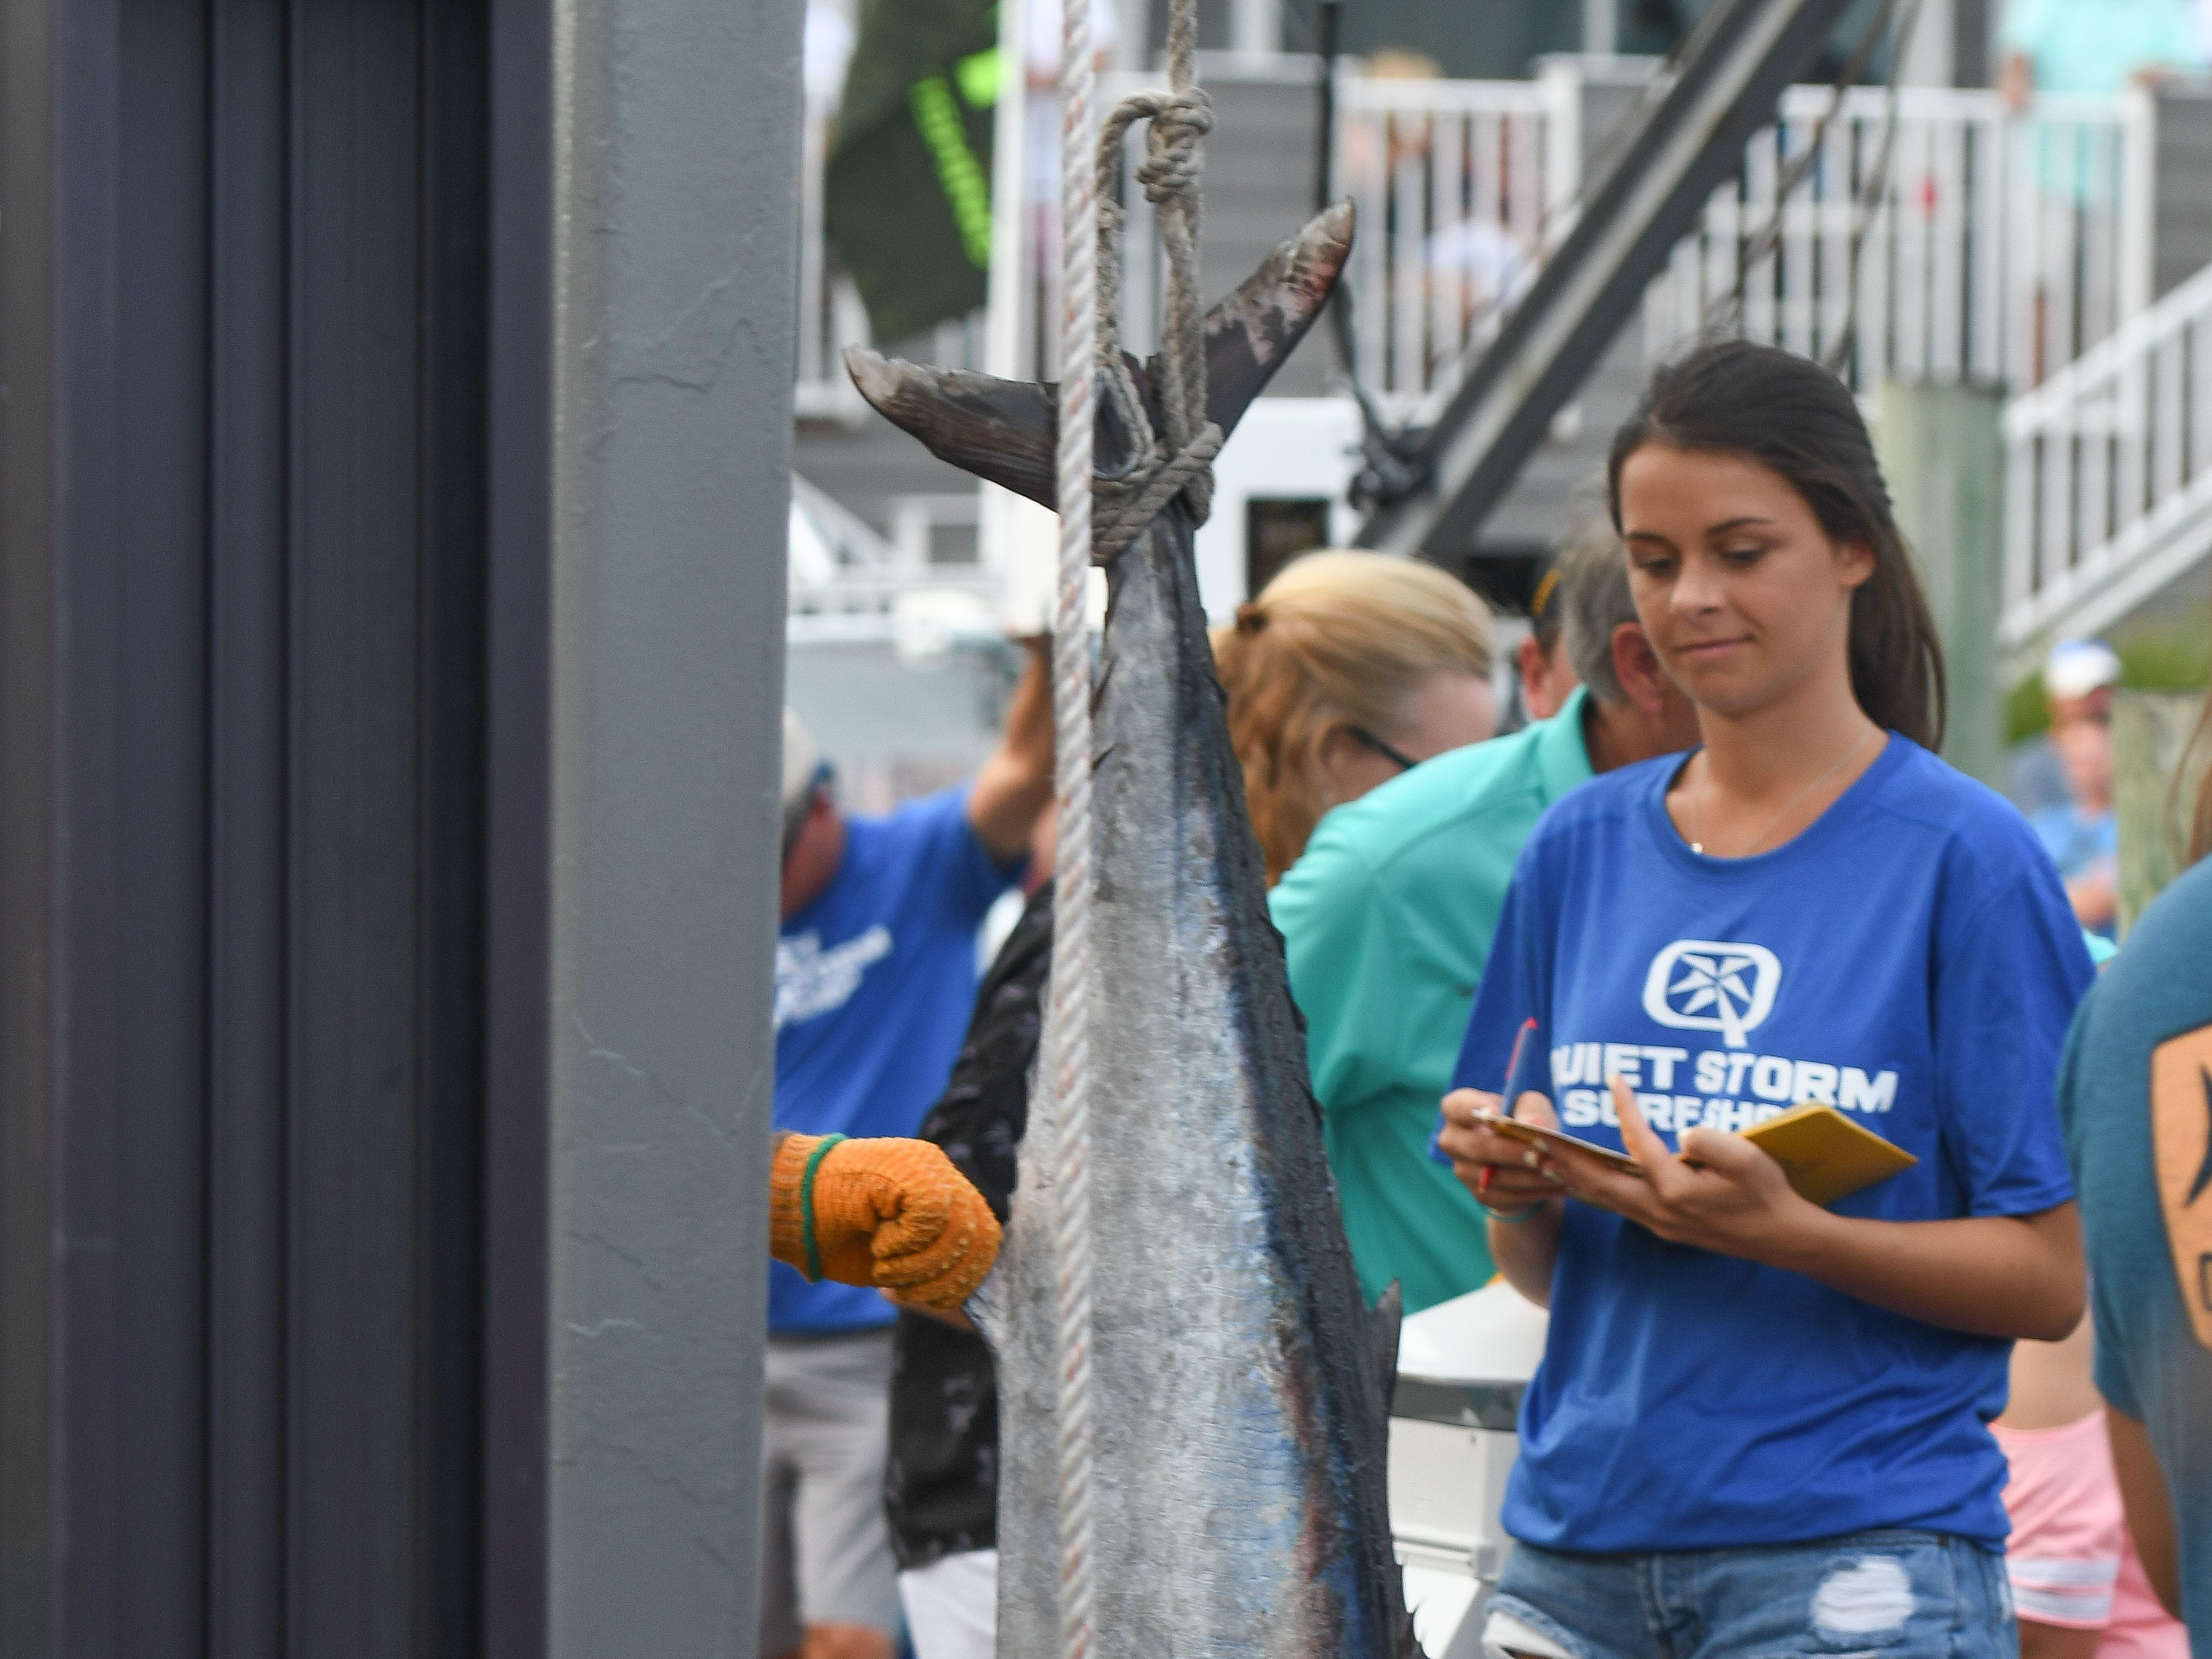 A 63 pound Wahoo was caught aboard the Over Board taking over the first place spot during 45th Annual White Marlin Open in Ocean City, Md. on Friday, August 10, 2018.